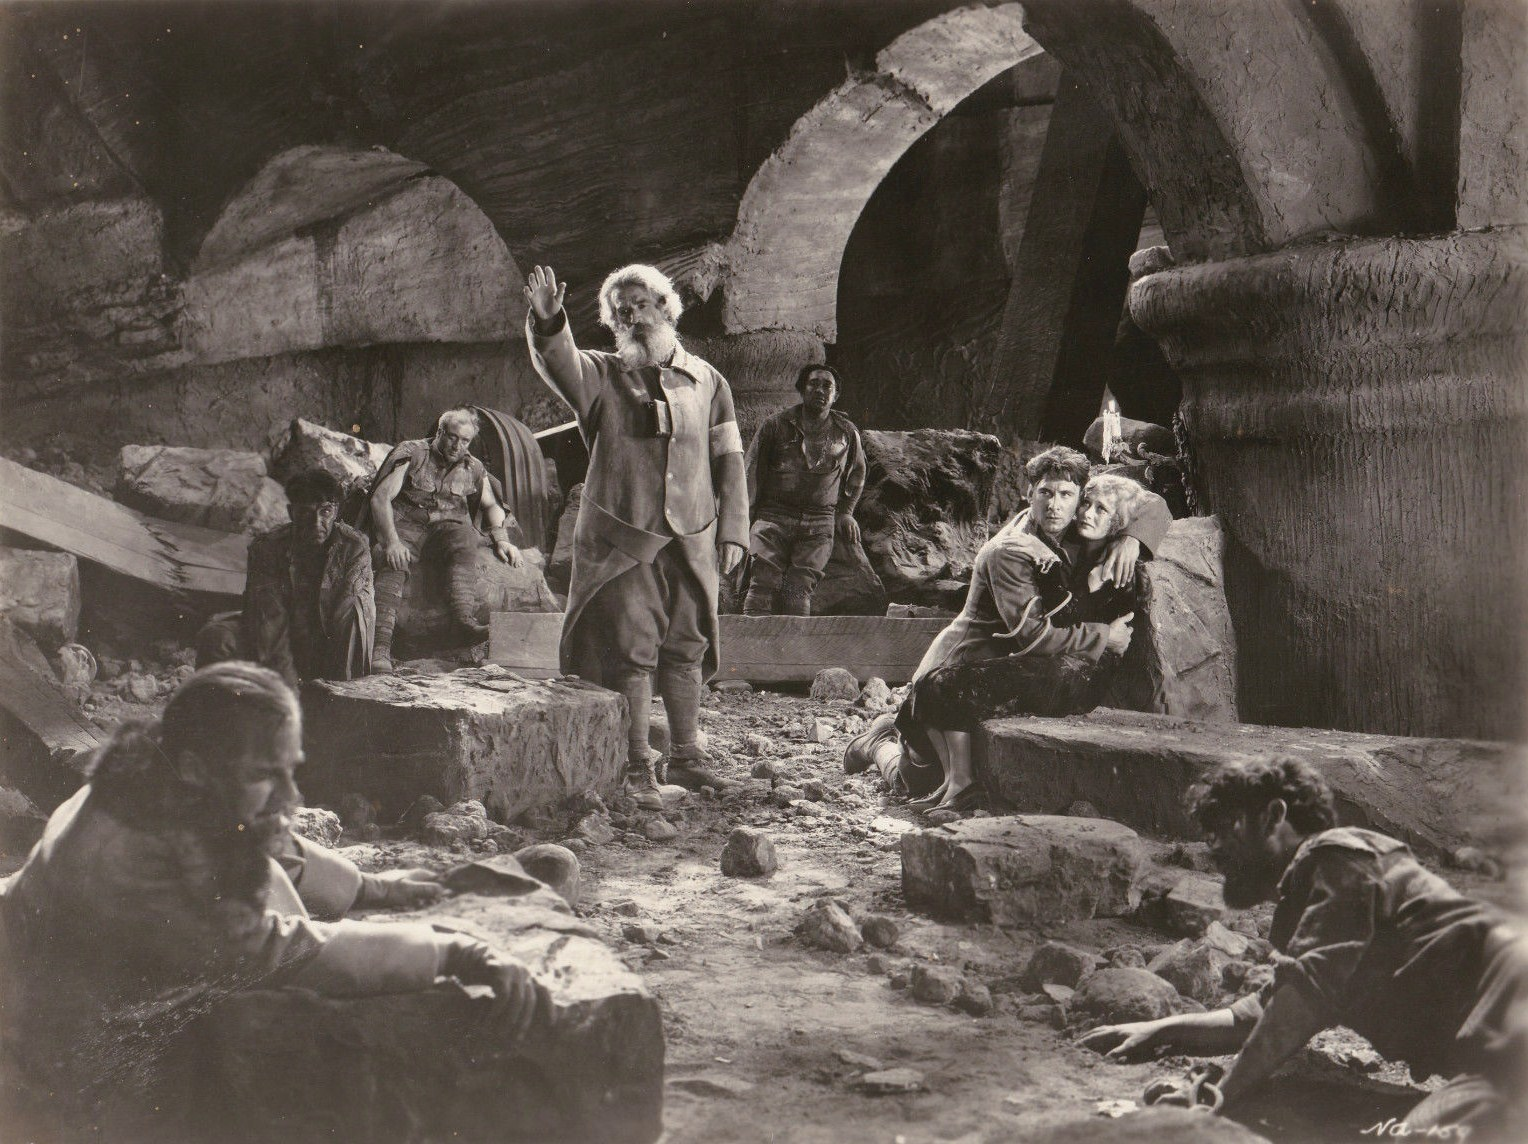 File:Noah's Ark (1928) still ...